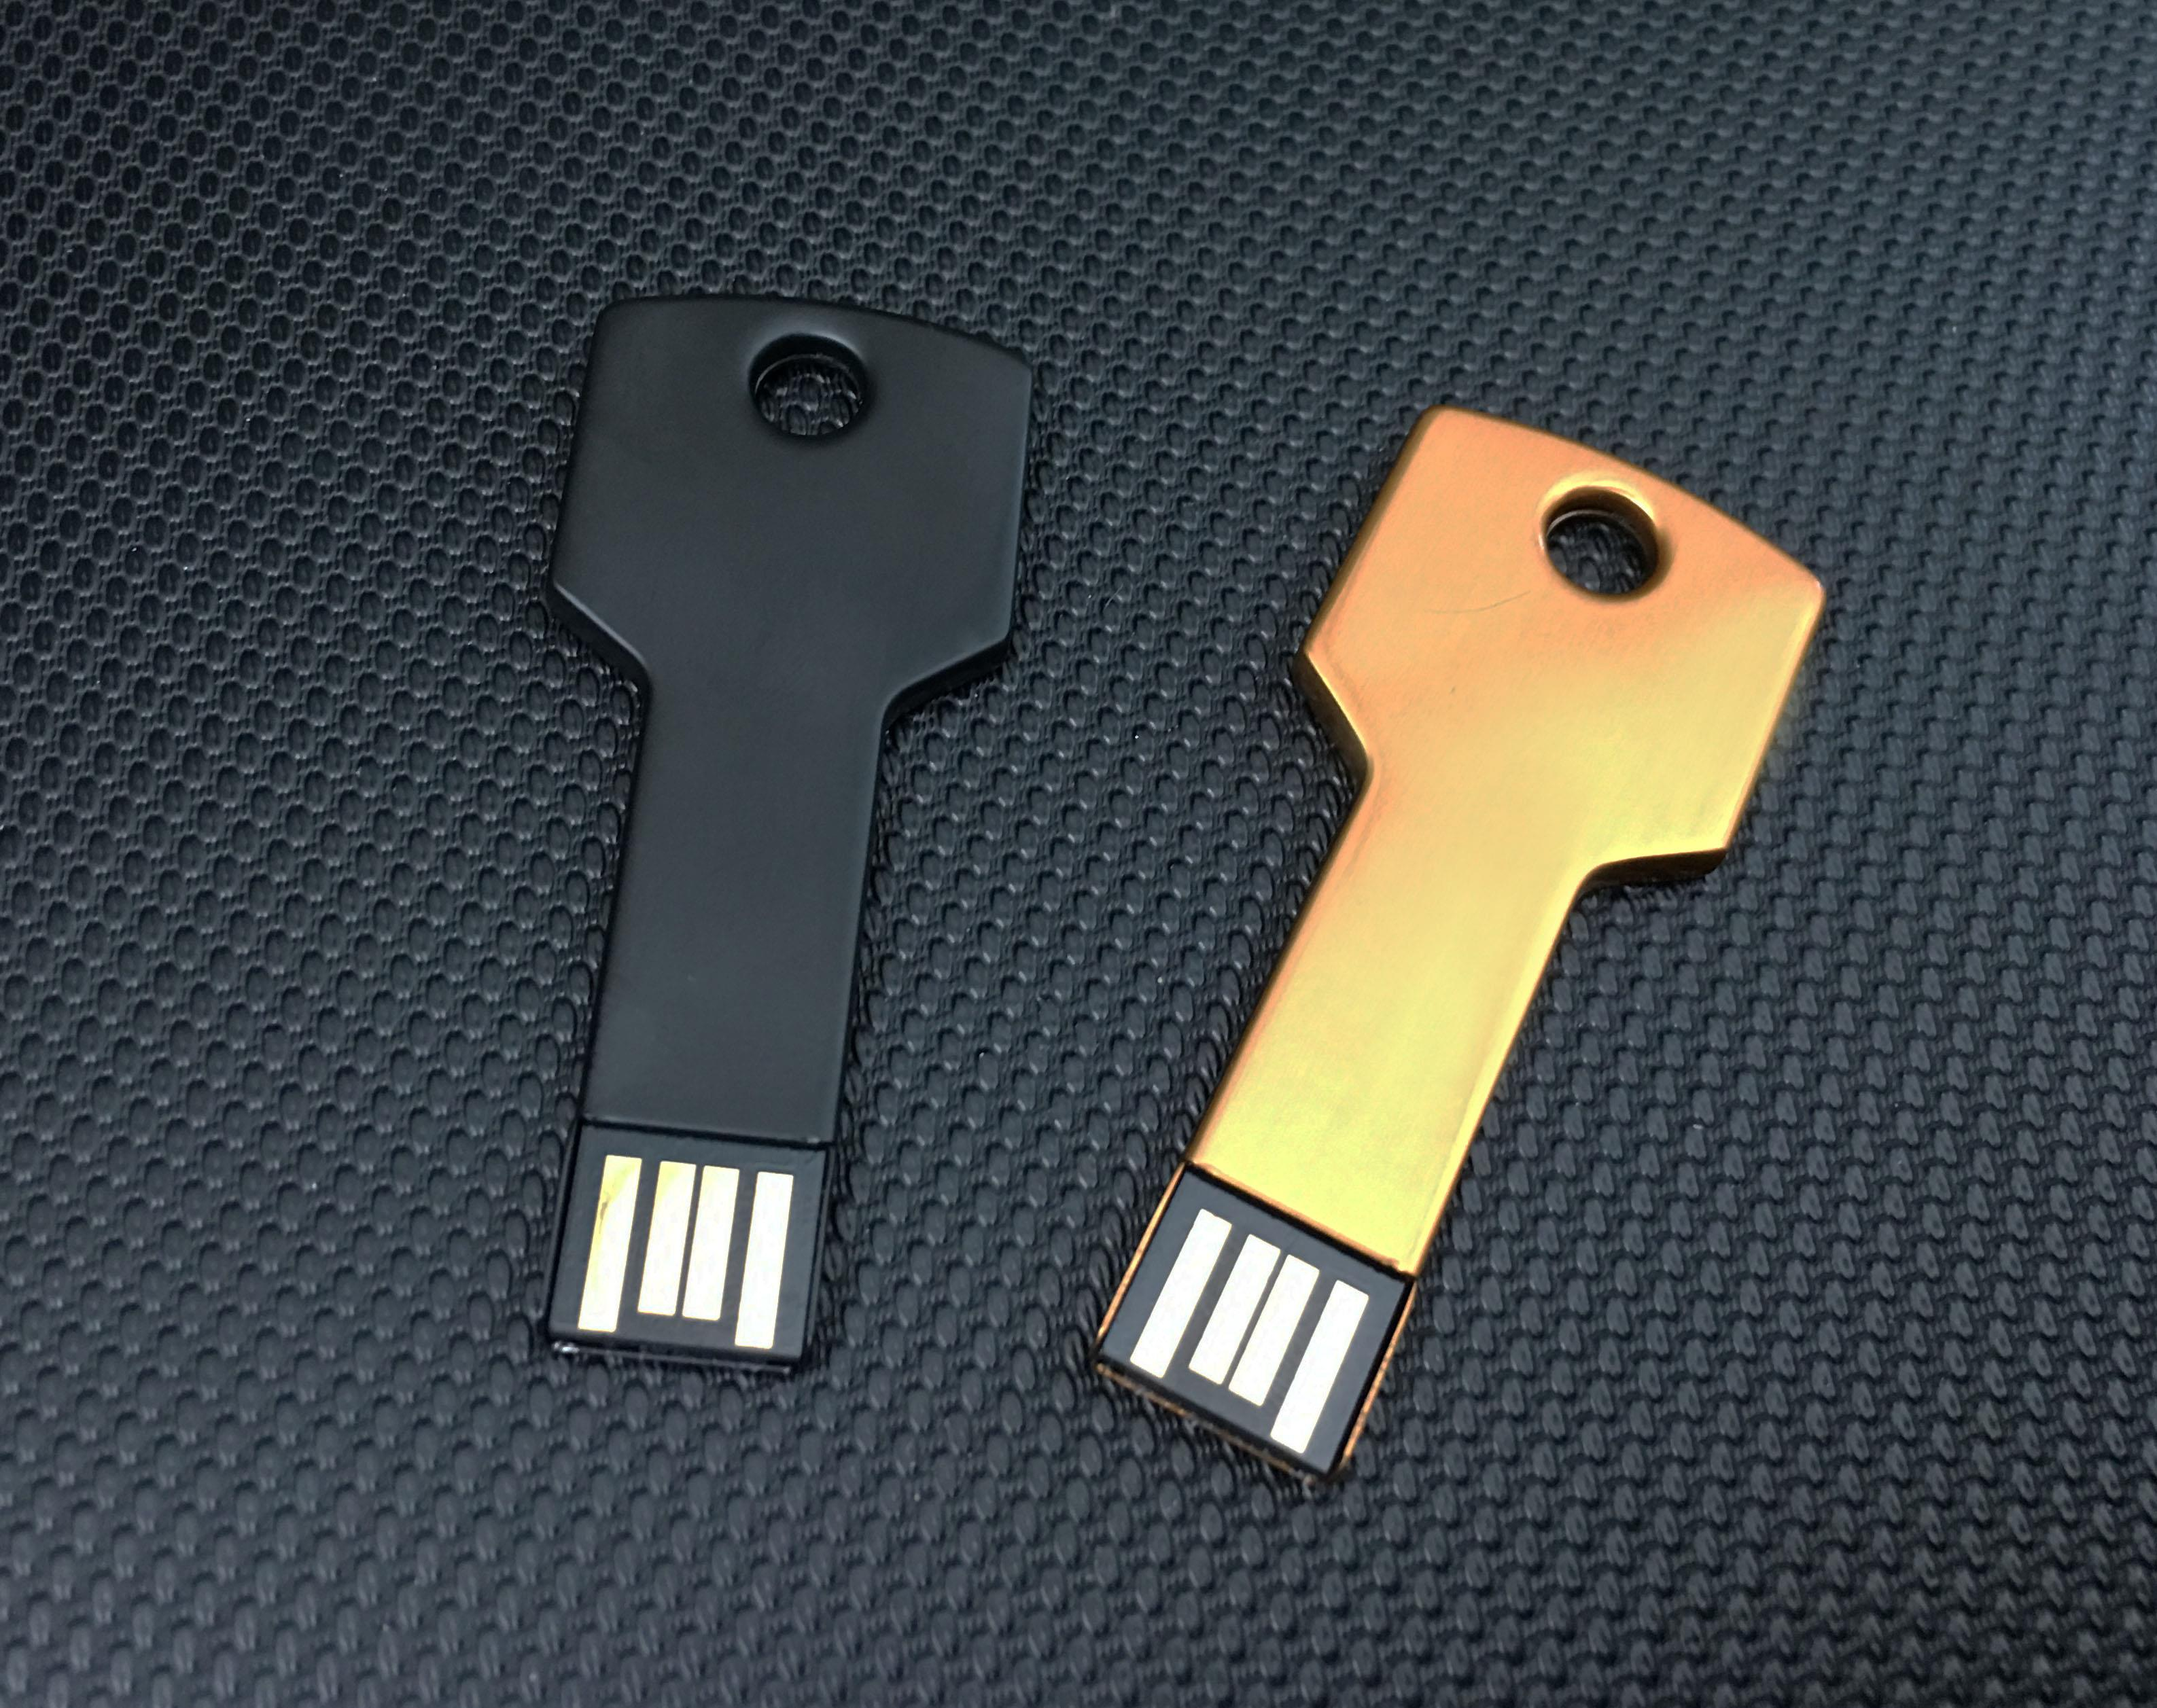 Sell Promotional Usb Flash Disk Fdmt17 Gold And Black From Indonesia Flashdisk Atm By Toko Zeropromosicheap Price